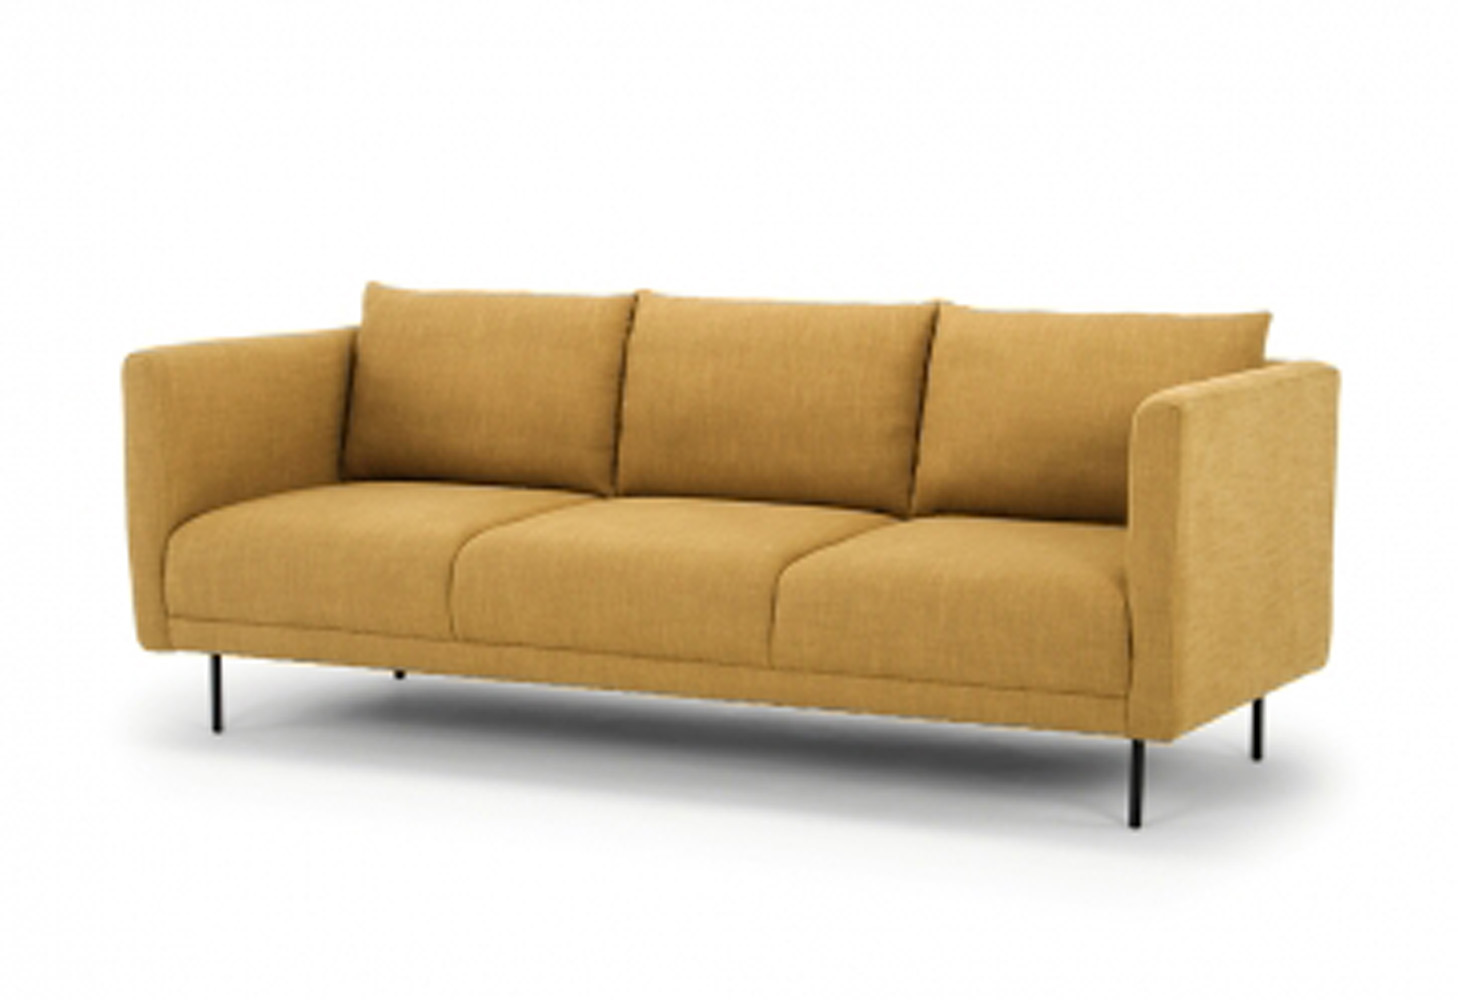 Kano Sofa 3 Seater -  Color Curry